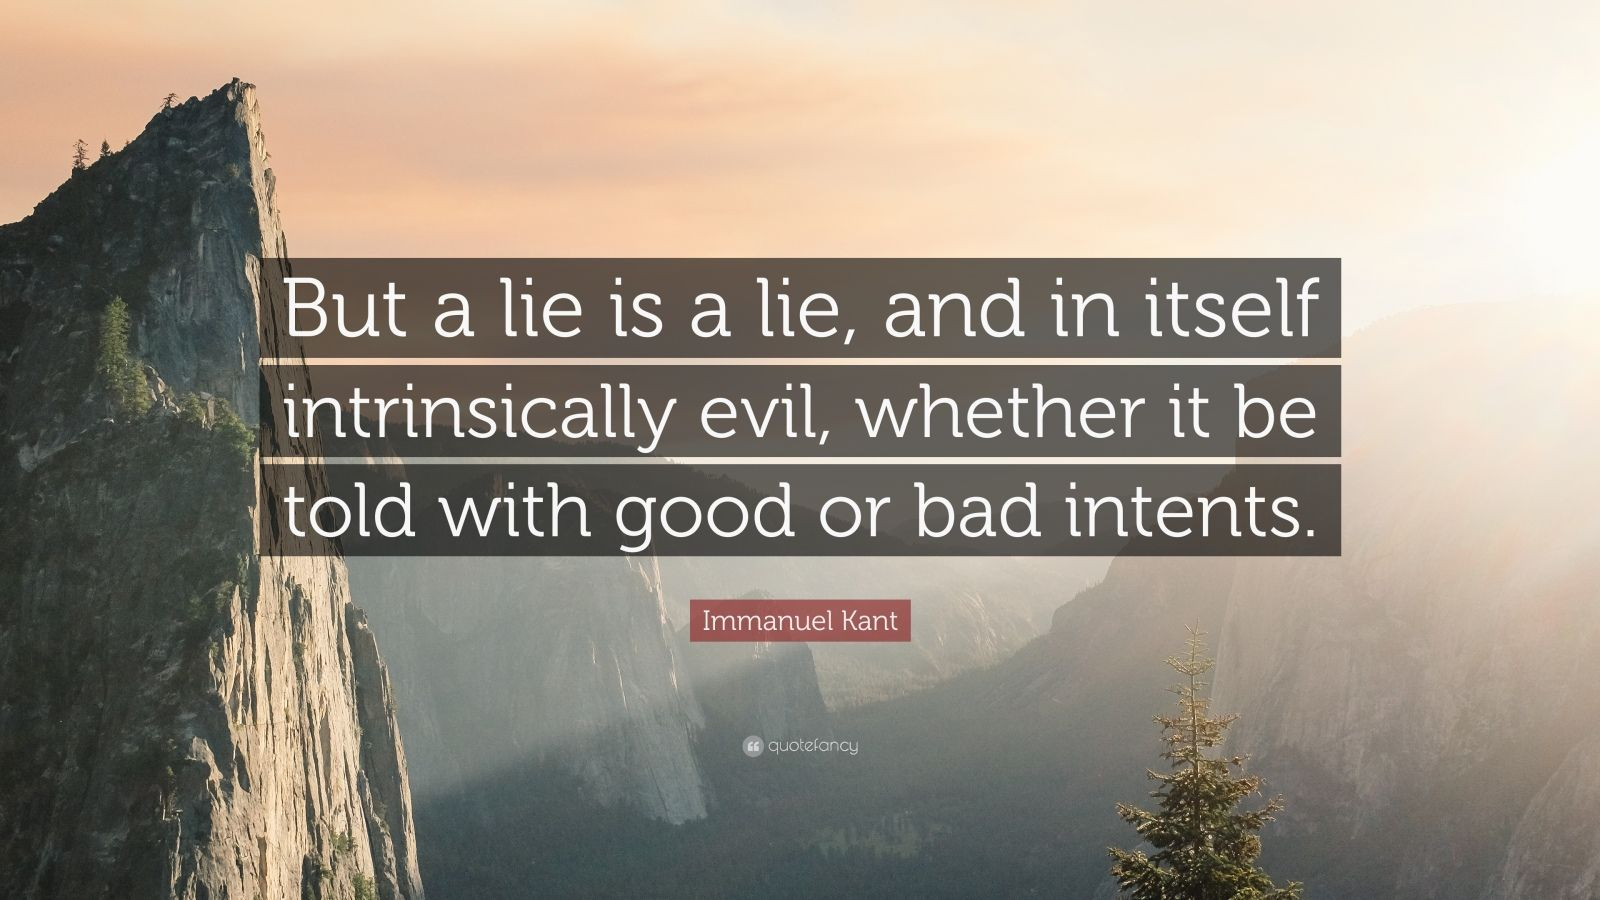 """Immanuel Kant Quote: """"But a lie is a lie, and in itself intrinsically evil, whether it be told with good or bad intents."""""""